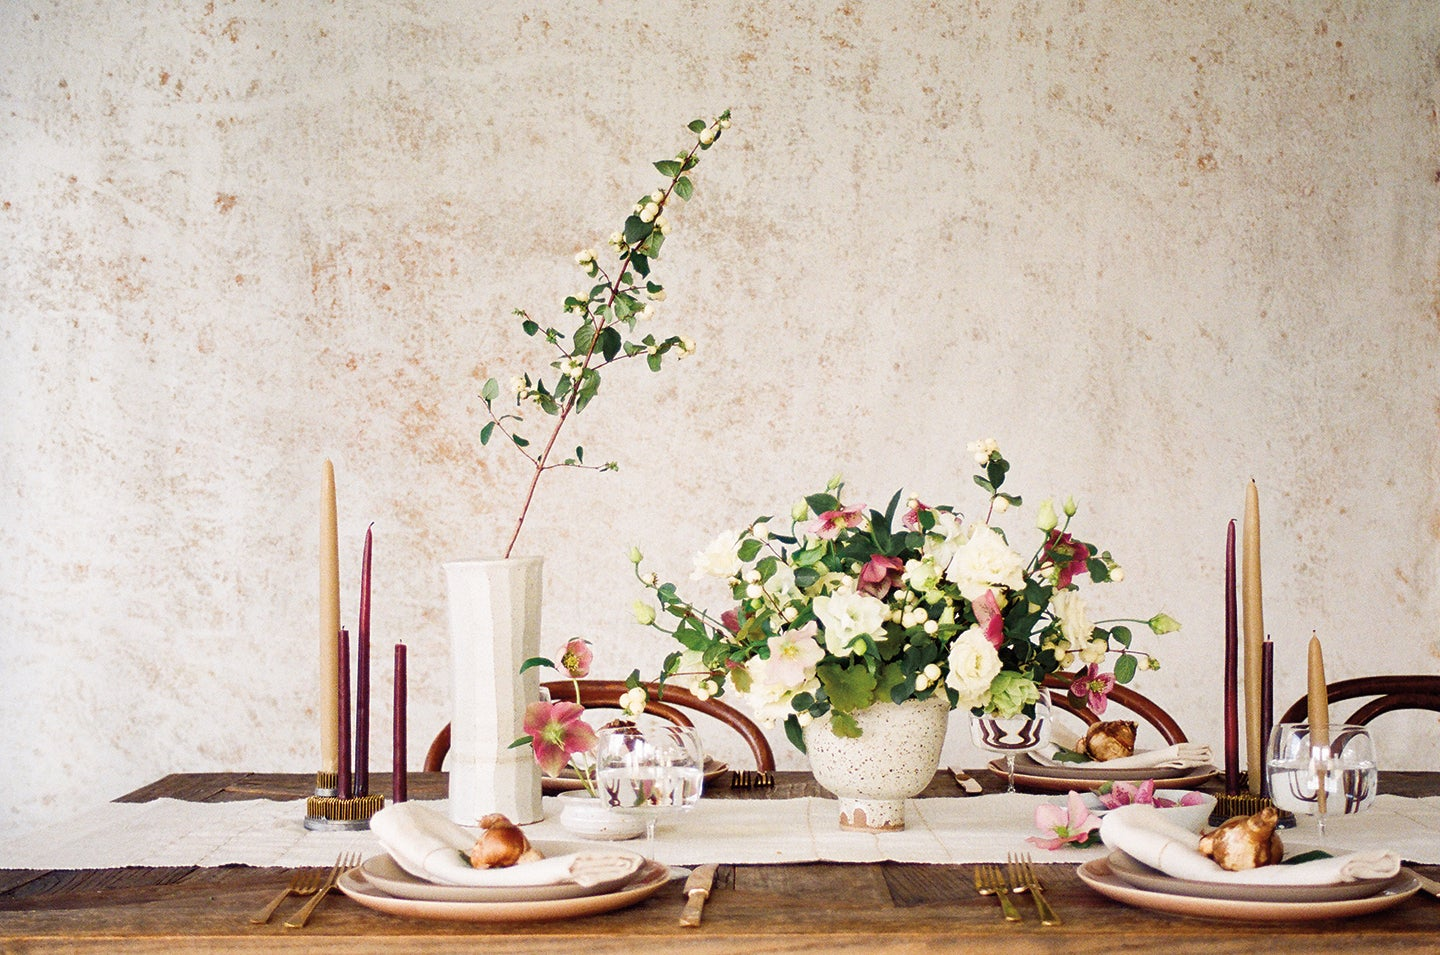 Dining room table with taper candles